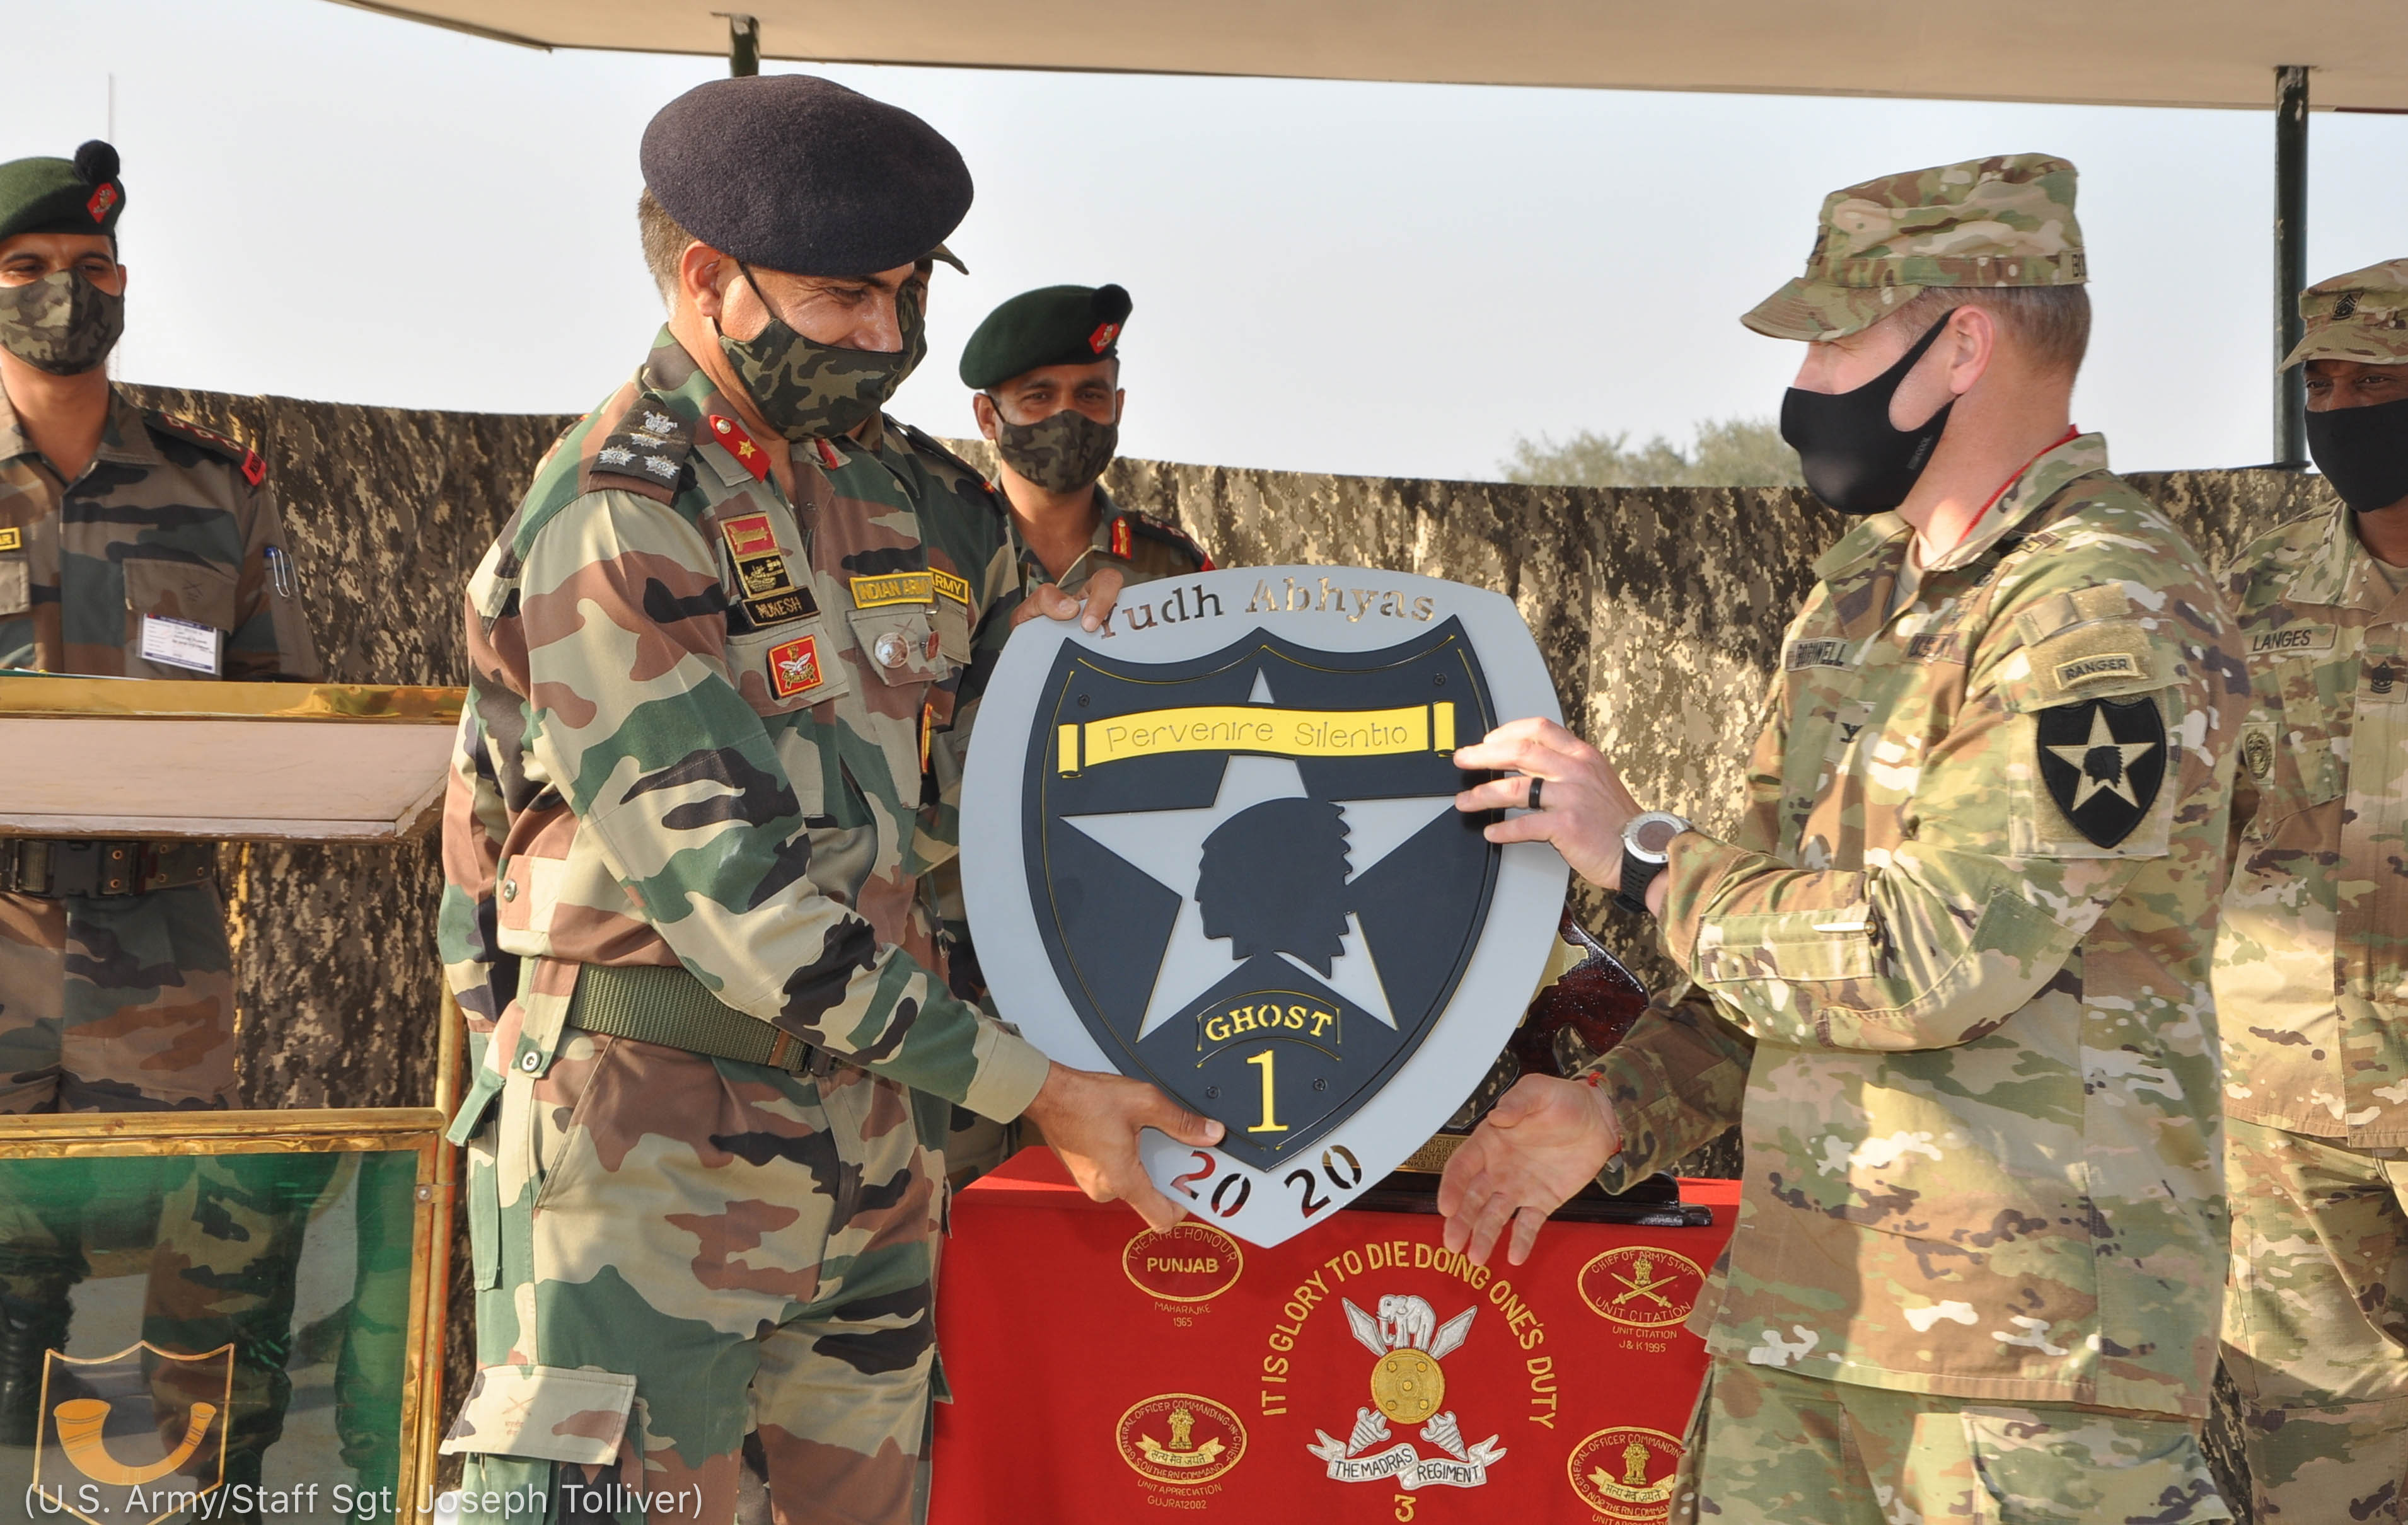 Two people in military uniforms holding a Yudh Abhyas plaque between them (U.S. Army/Staff Sgt. Joseph Tolliver)